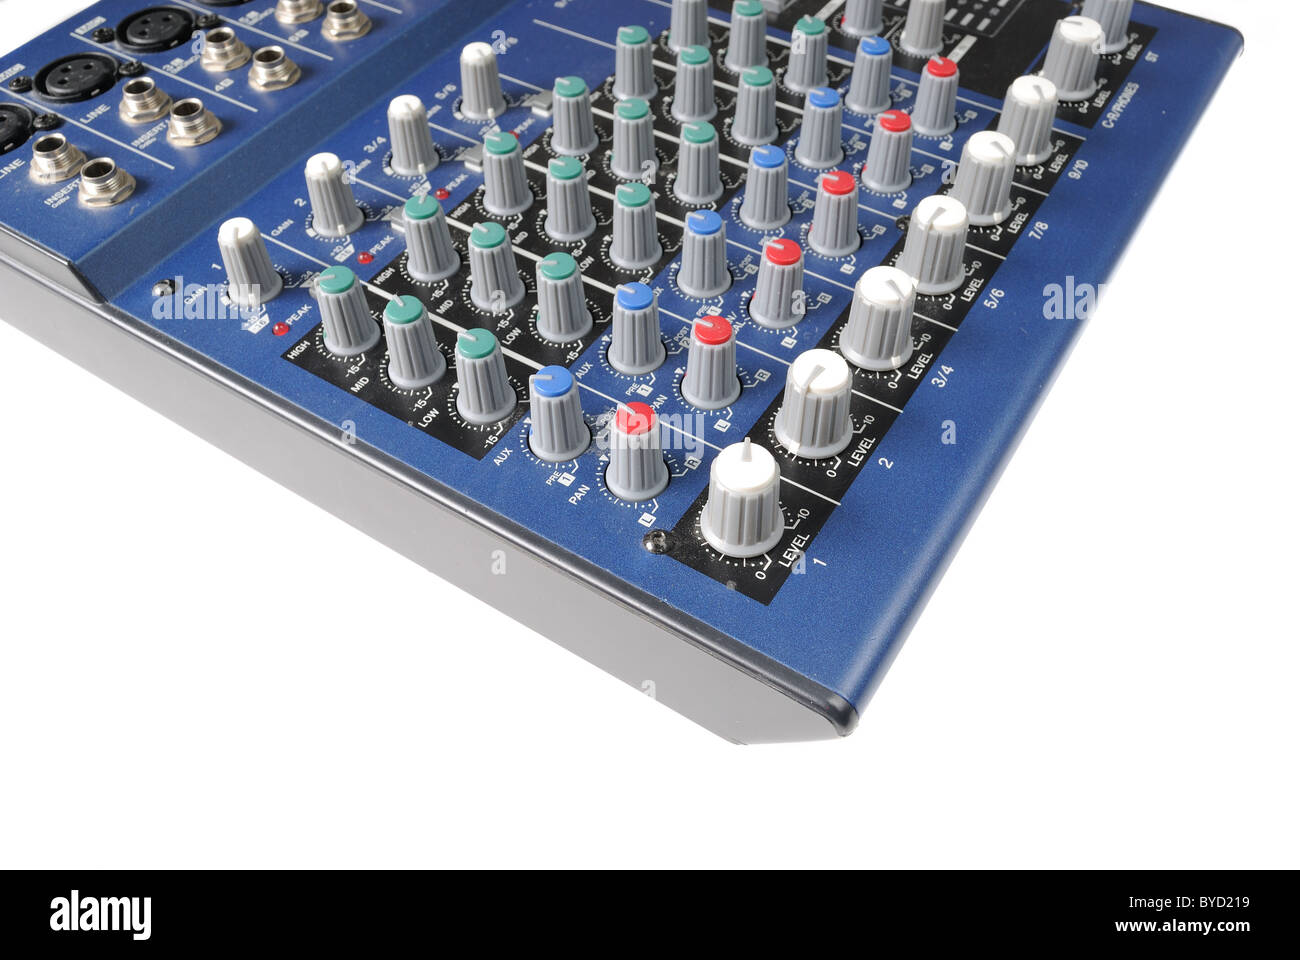 A mixing board on a preamp for amplifying audio signal. - Stock Image